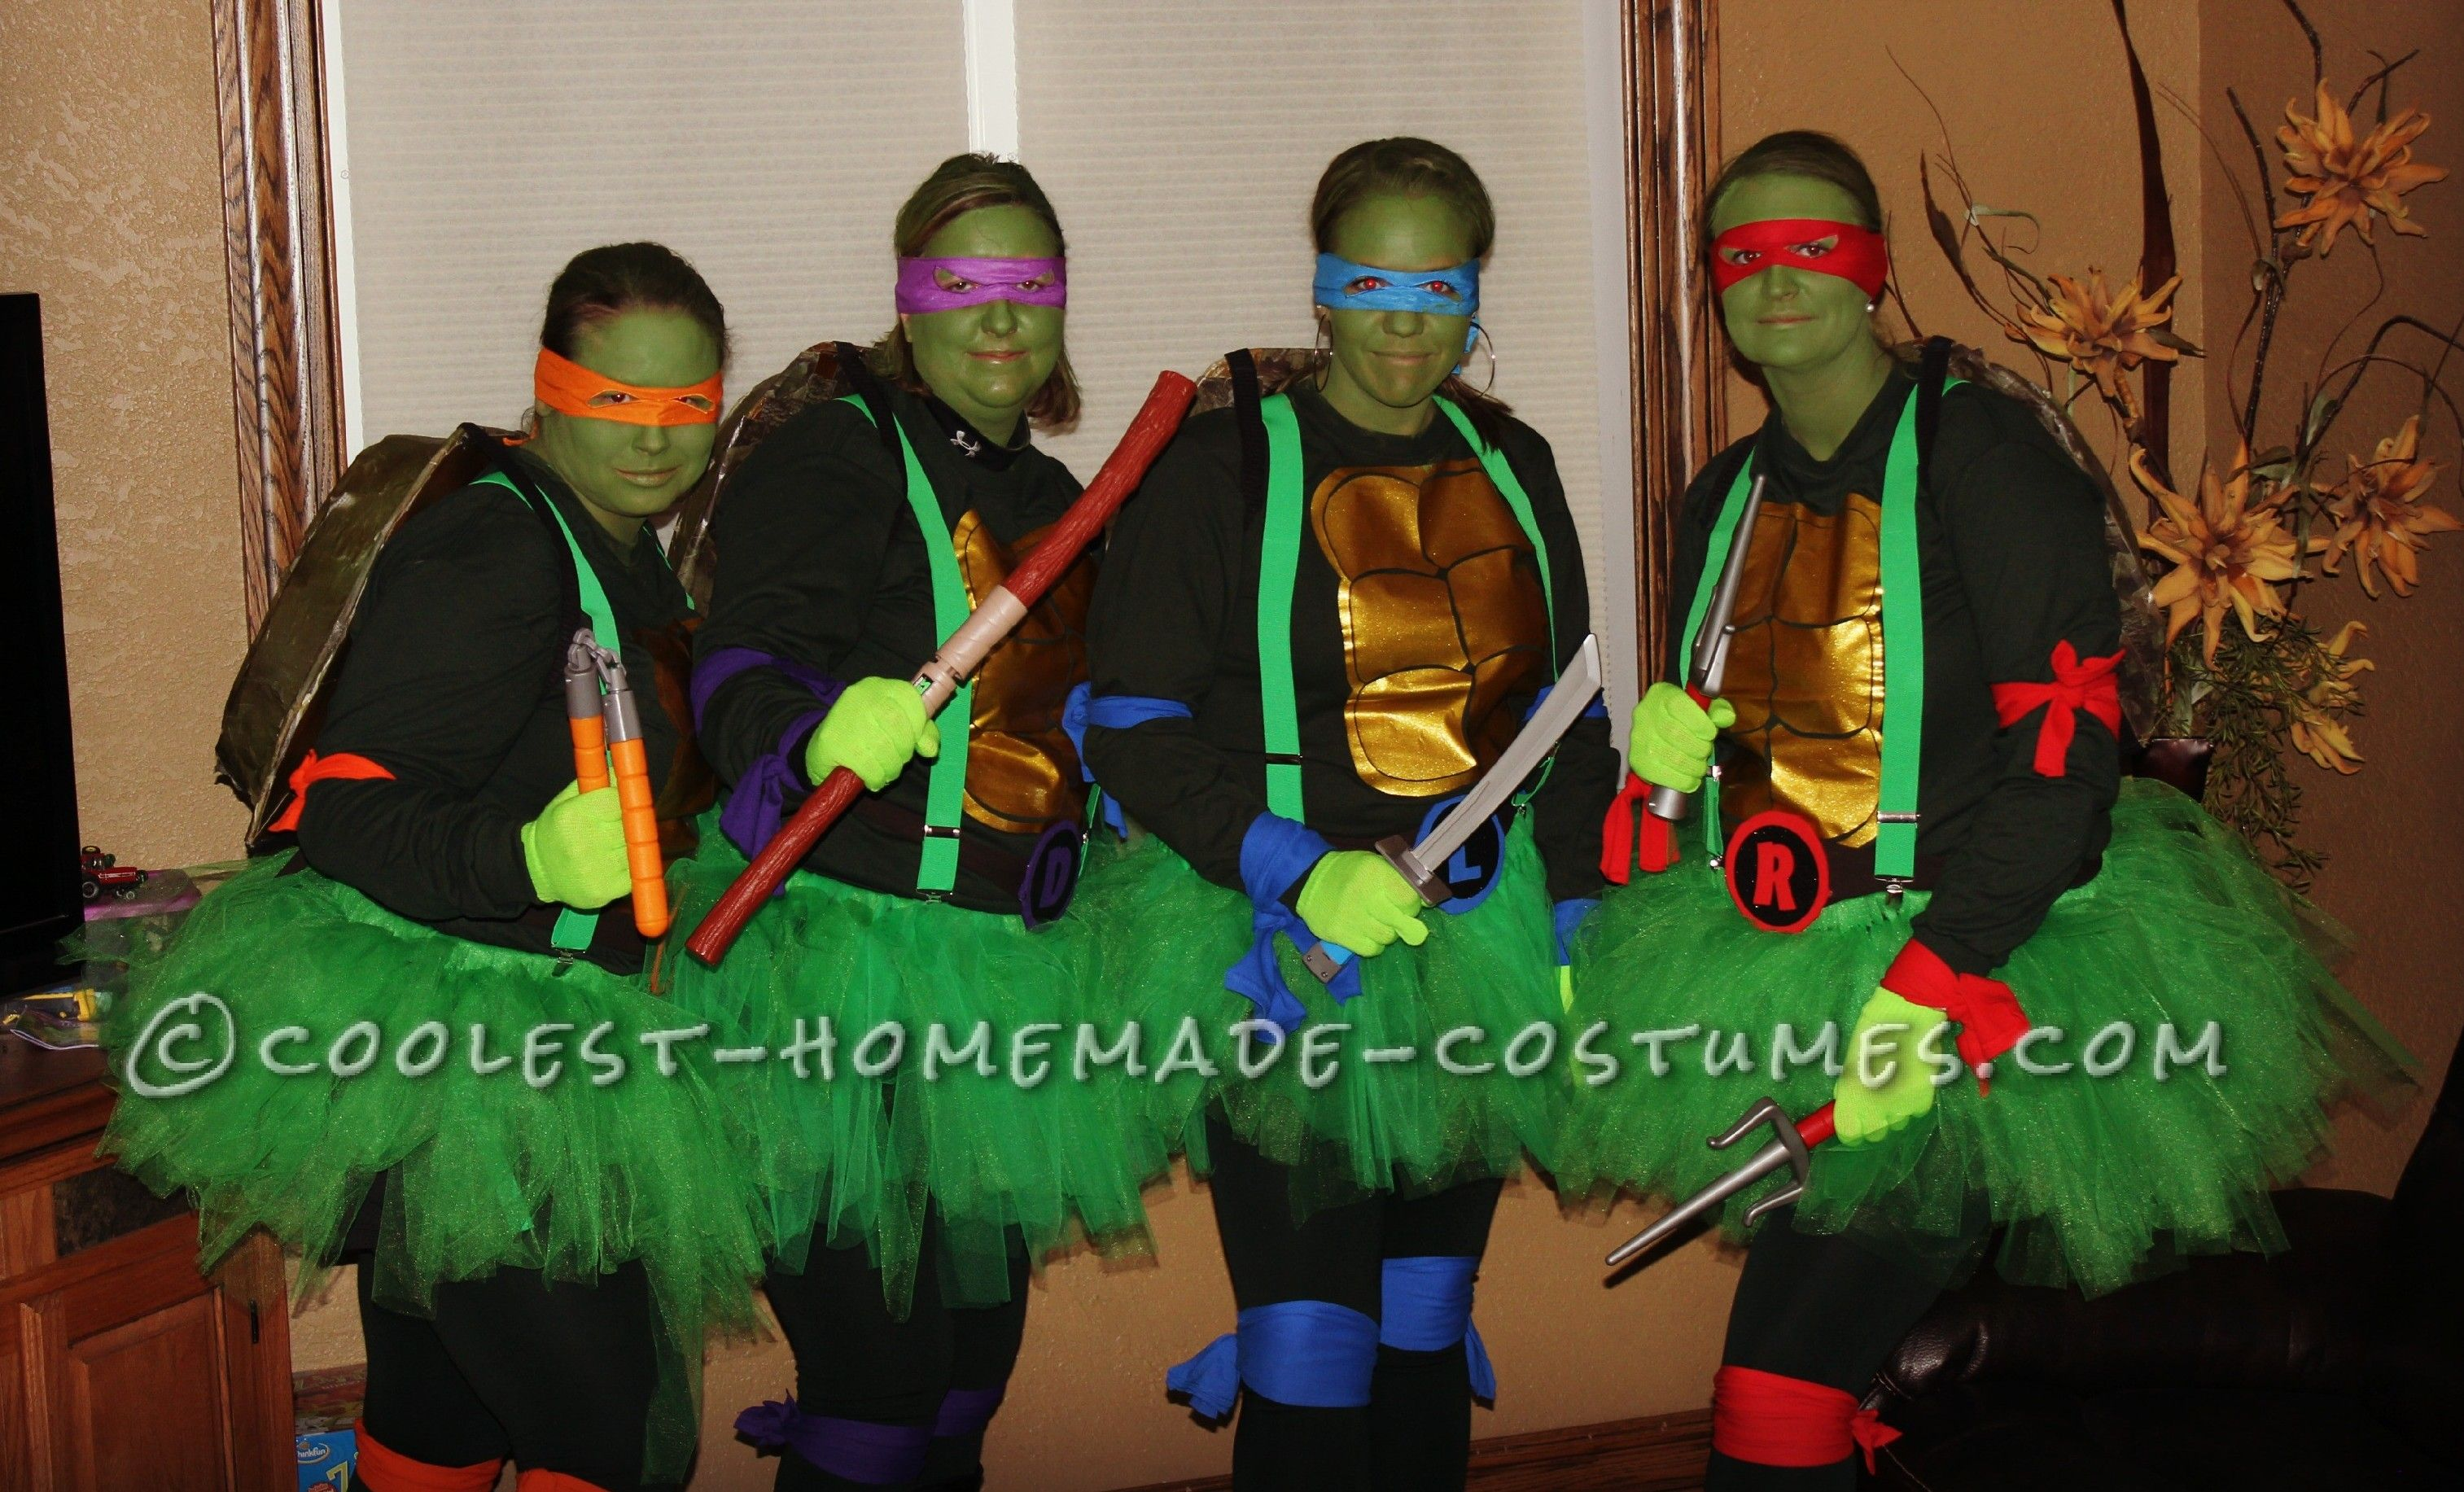 Cowabunga diy ninja turtle costumes for female group diy ninja diy ninja turtle costumes for female group coolest homemade costumes solutioingenieria Image collections